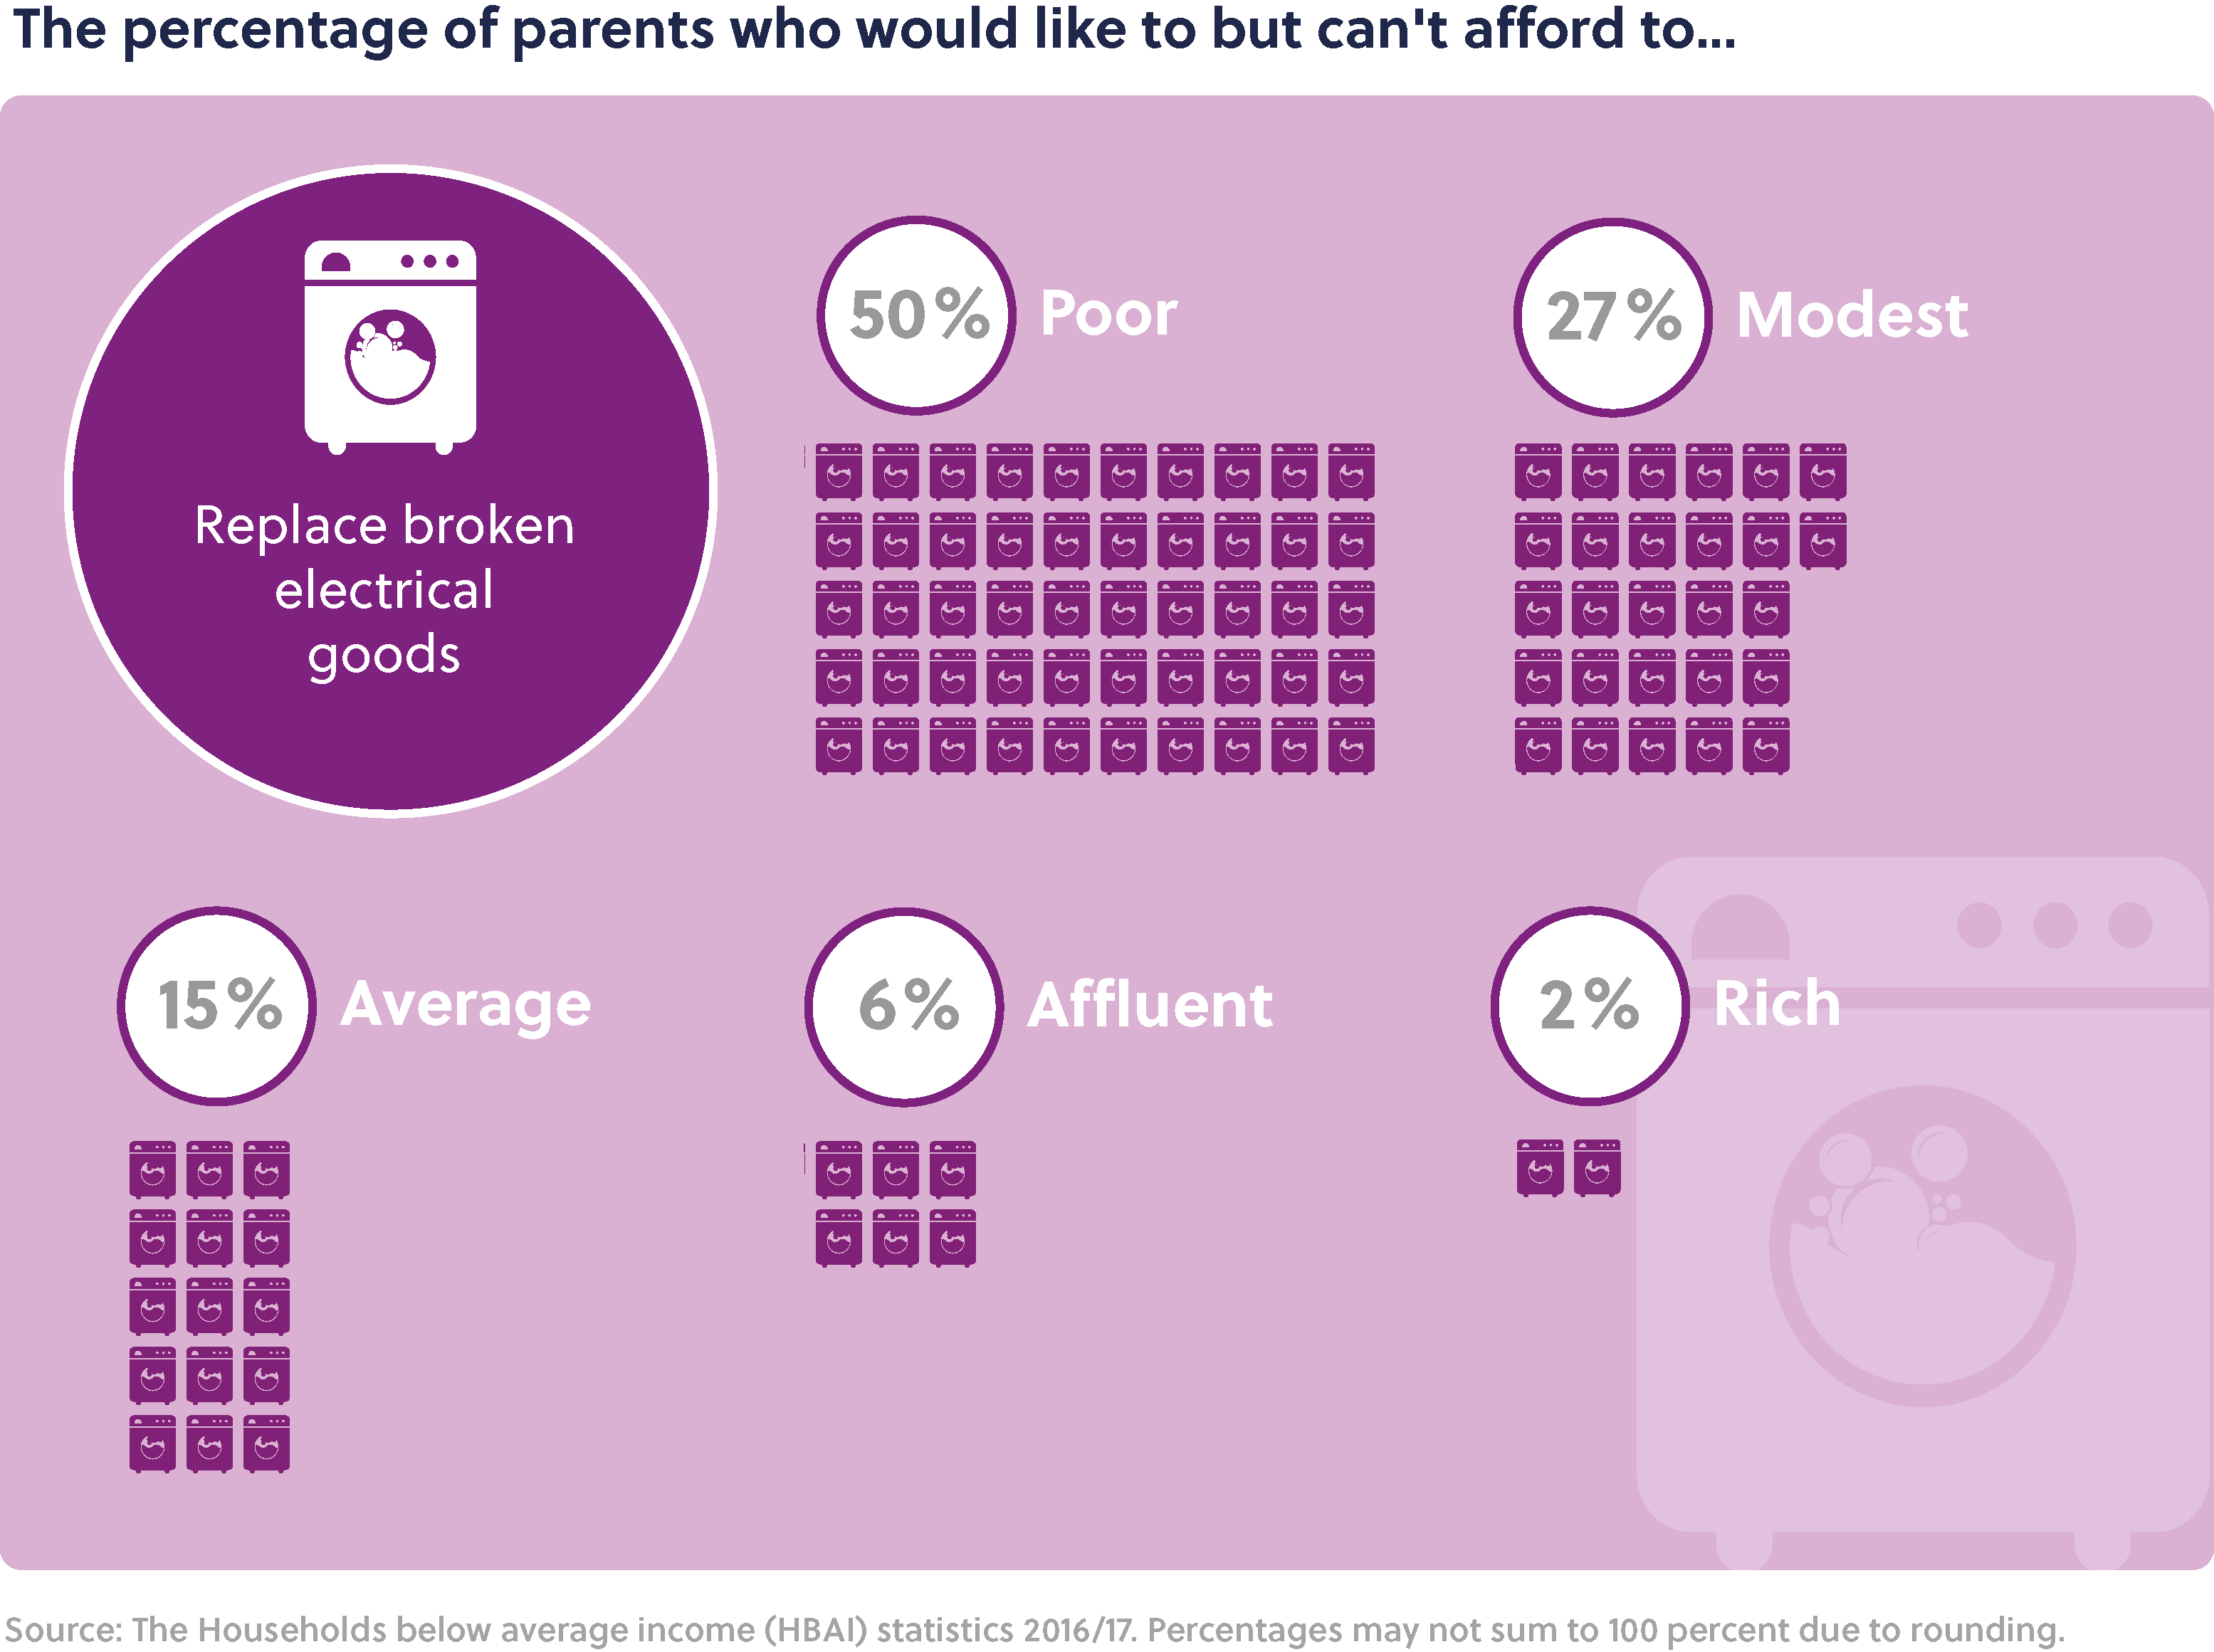 Main title: The percentage of parents who would like to but can't afford to... Sub-heading: Replace broken electrical goods. Poor: 50%, Modest: 27%, Average: 15%, Affluent: 6%, and Rich: 2%.  Source: The Households below average income (HBAI) statistics 2016/17. Percentages may not sum to 100 percent due to rounding.